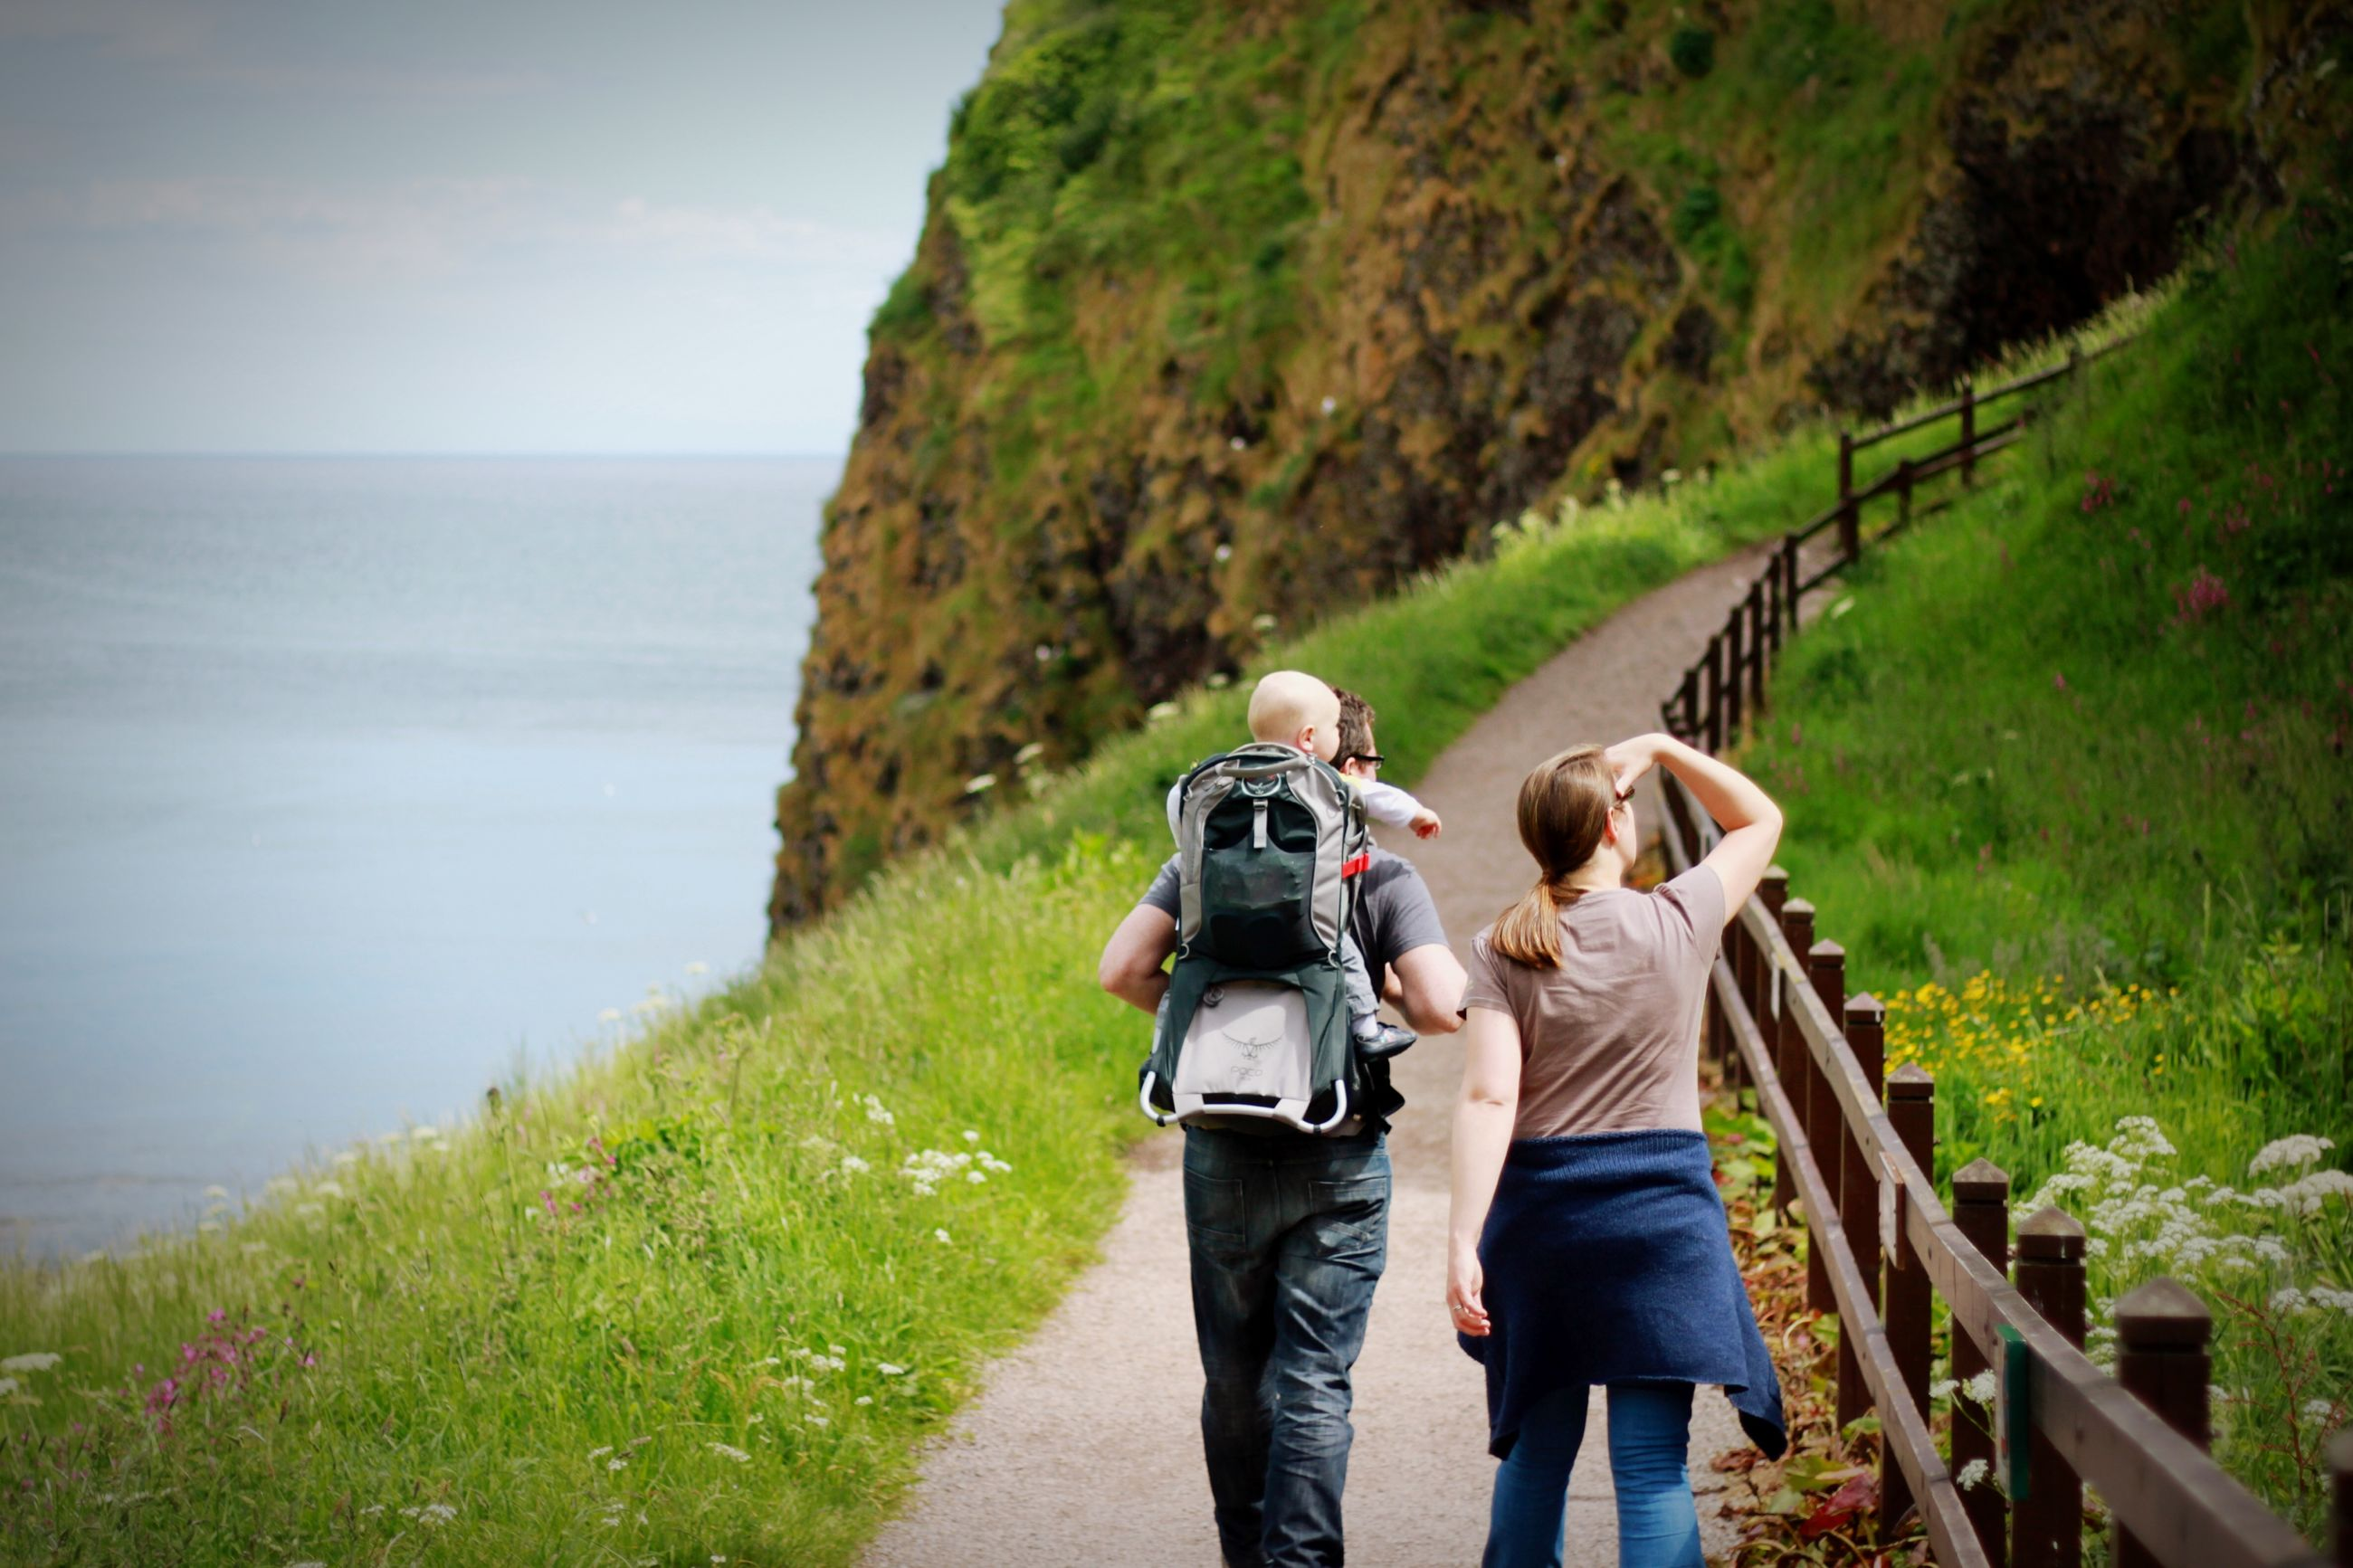 lifestyles, leisure activity, men, rear view, mountain, person, casual clothing, sea, standing, nature, scenics, full length, backpack, beauty in nature, tranquil scene, tranquility, water, tourist